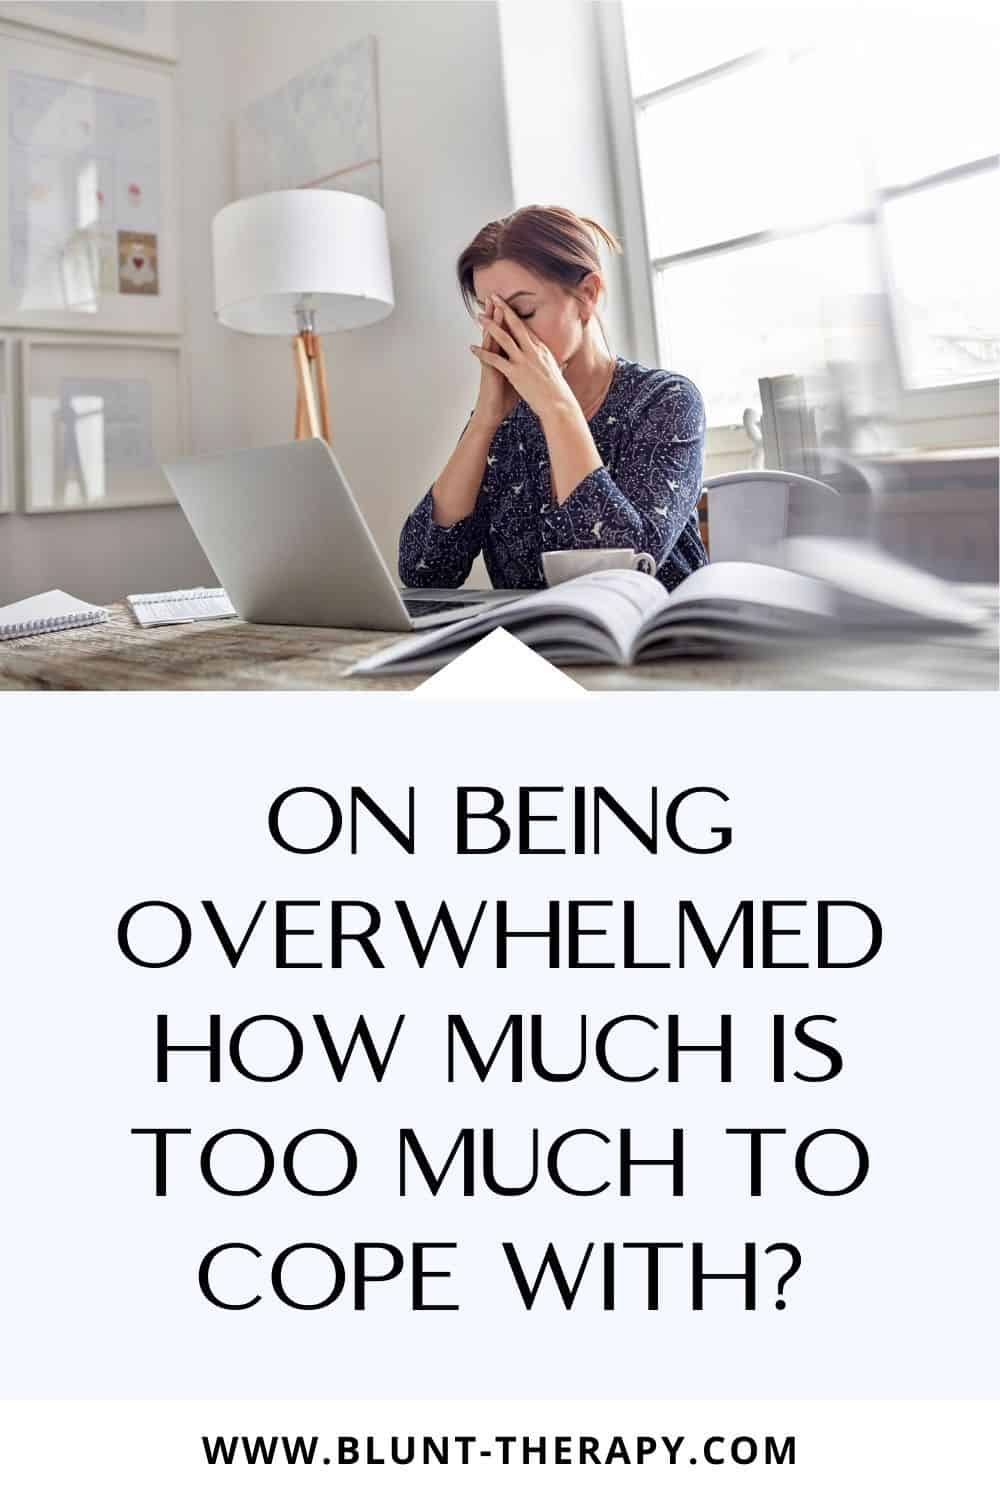 On Being Overwhelmed How Much Is Too Much to Cope With Pinterest Image